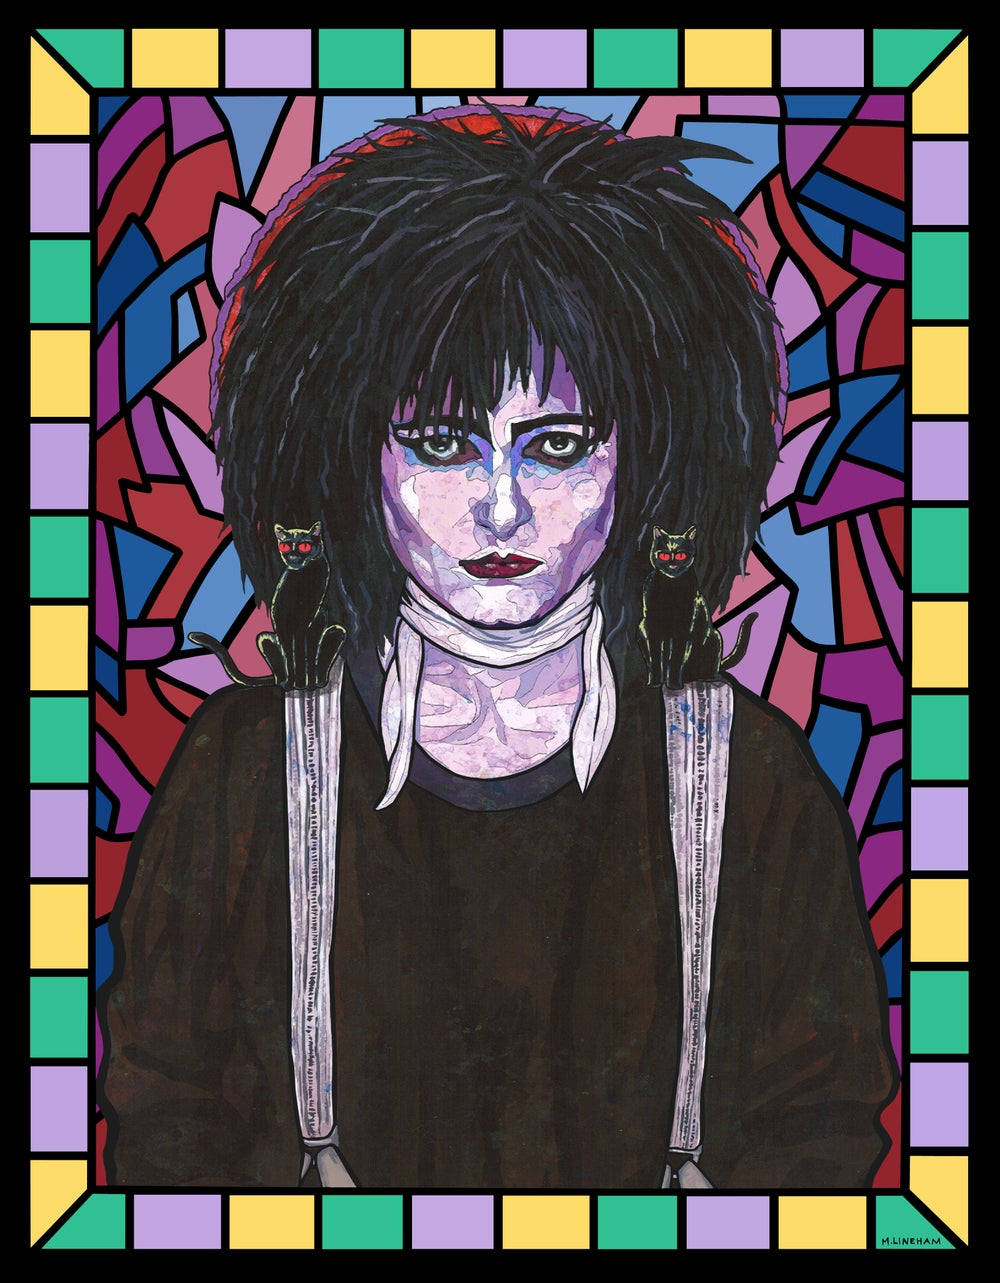 Saint Siouxsie Sioux (Siouxsie and the Banshees)